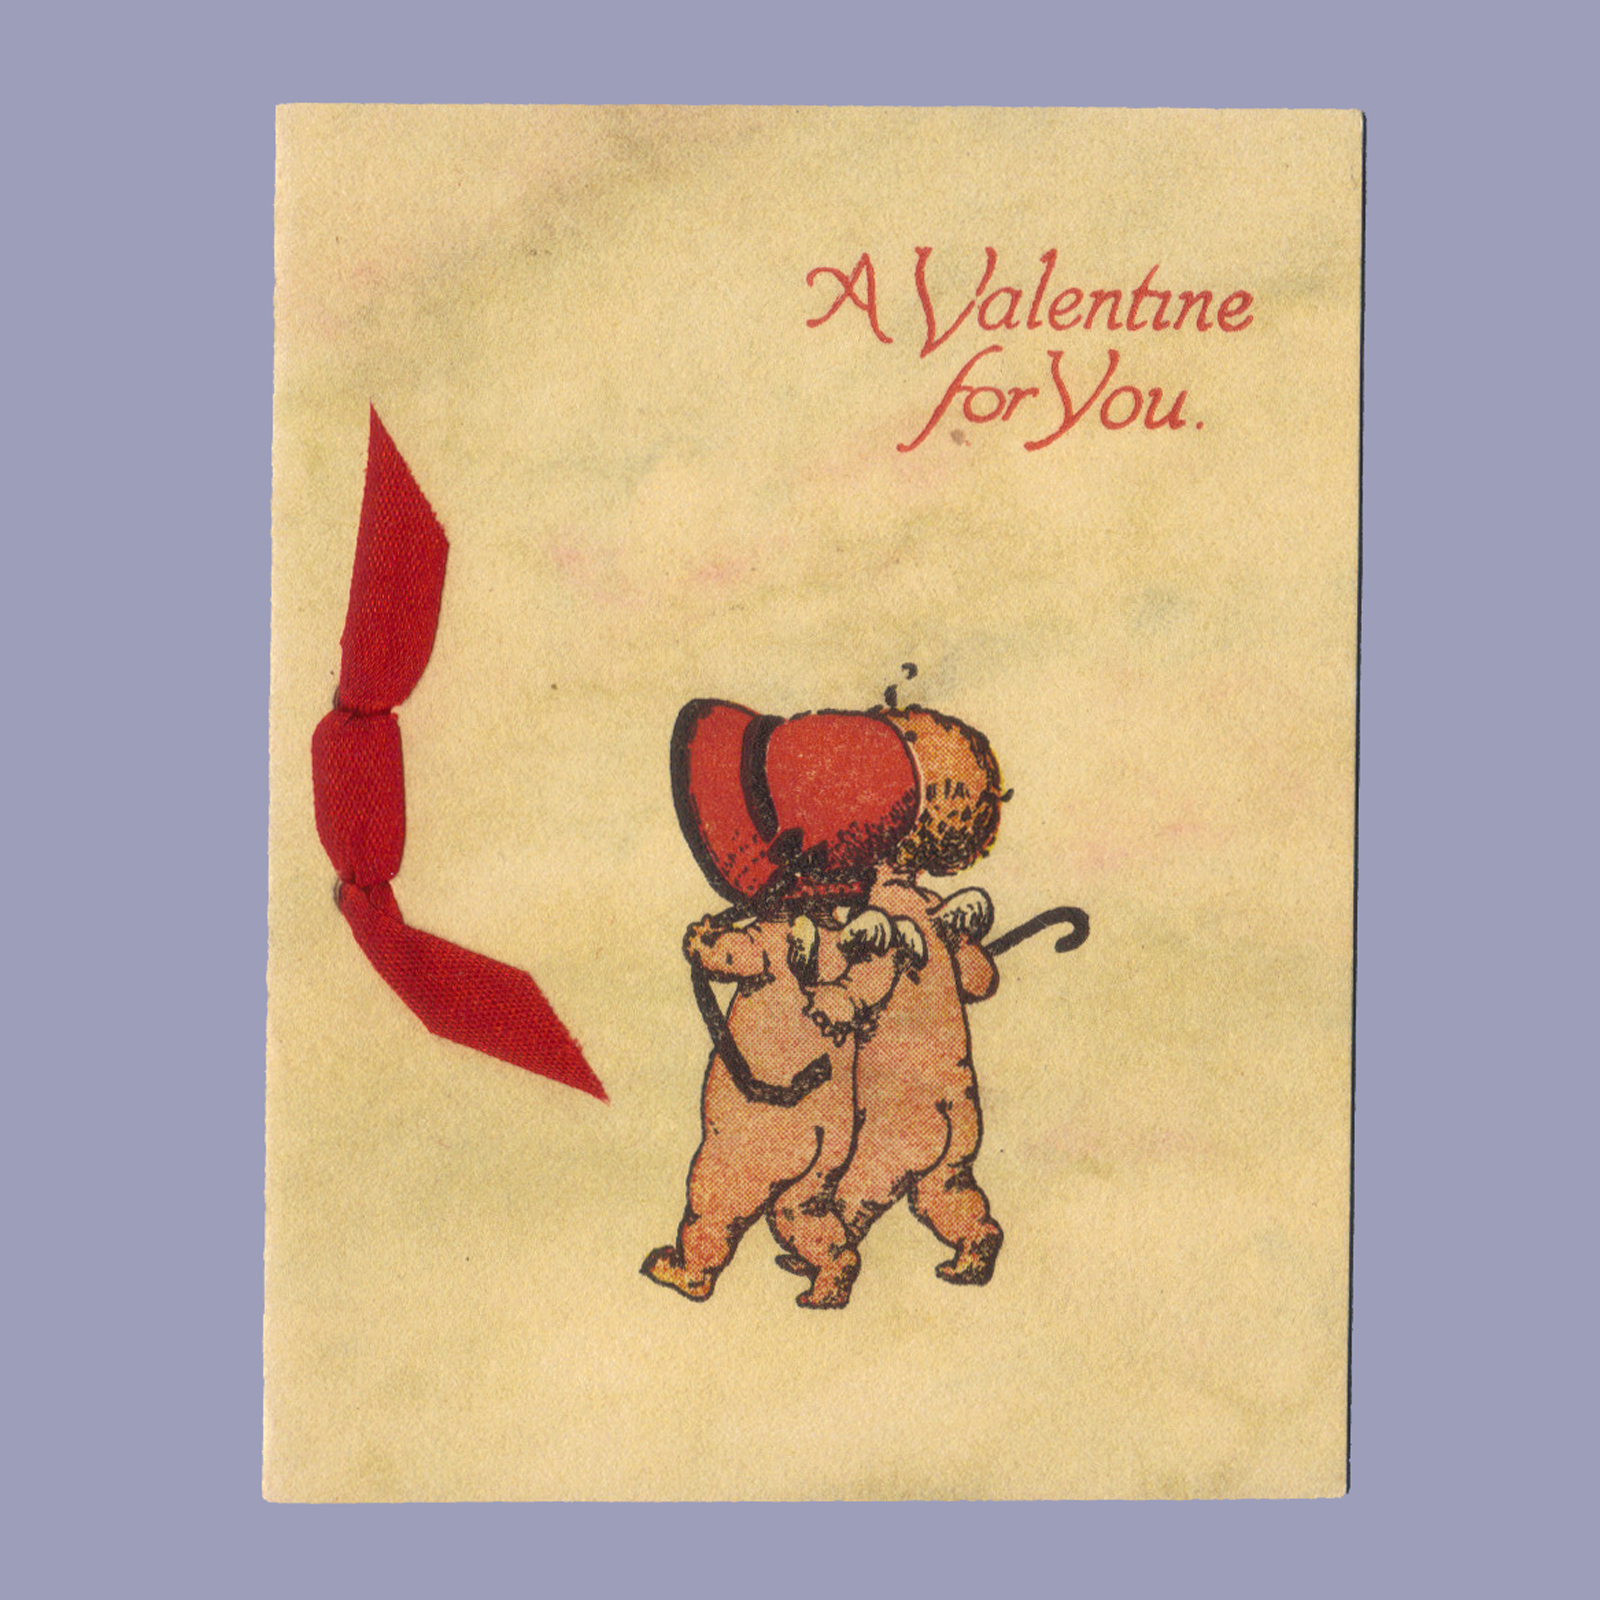 Vintage valentine museum maker gibson art company gibson i would love to hear from any gibson collectors who have any input on this somewhat confusing era of the company history and how cards were marked during m4hsunfo